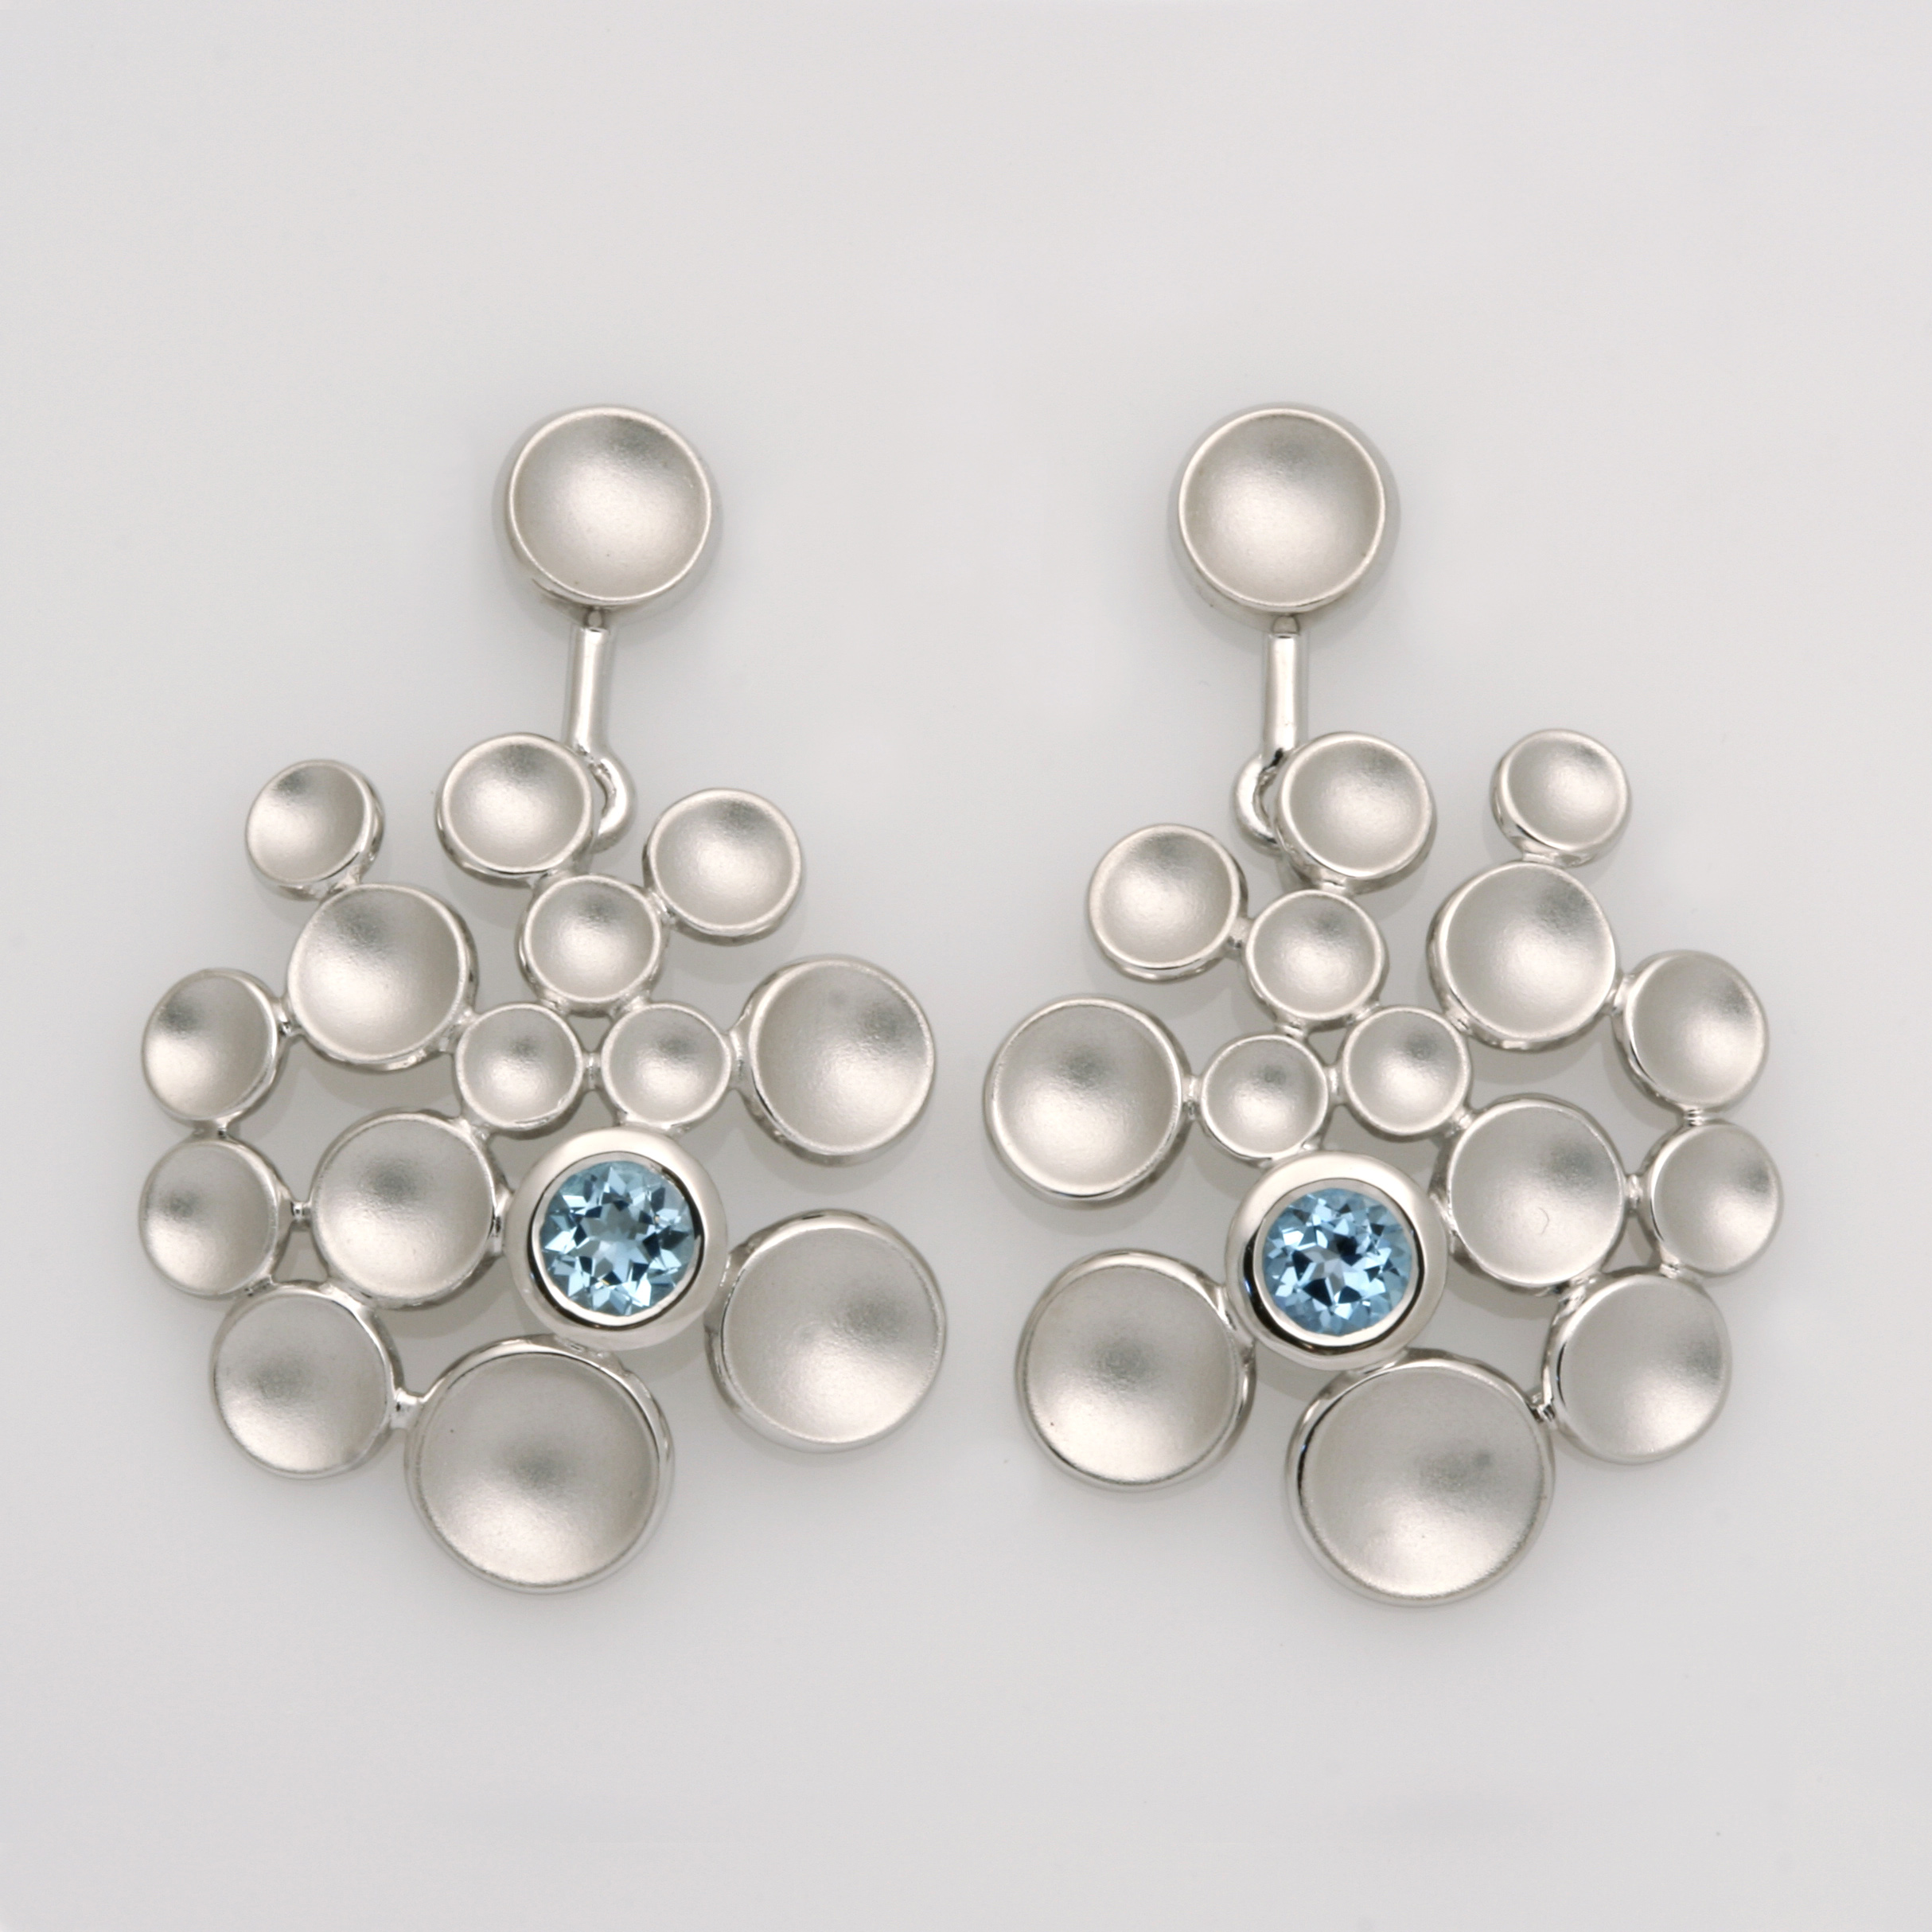 E0222 sterling silver and blue topaz earrings $295